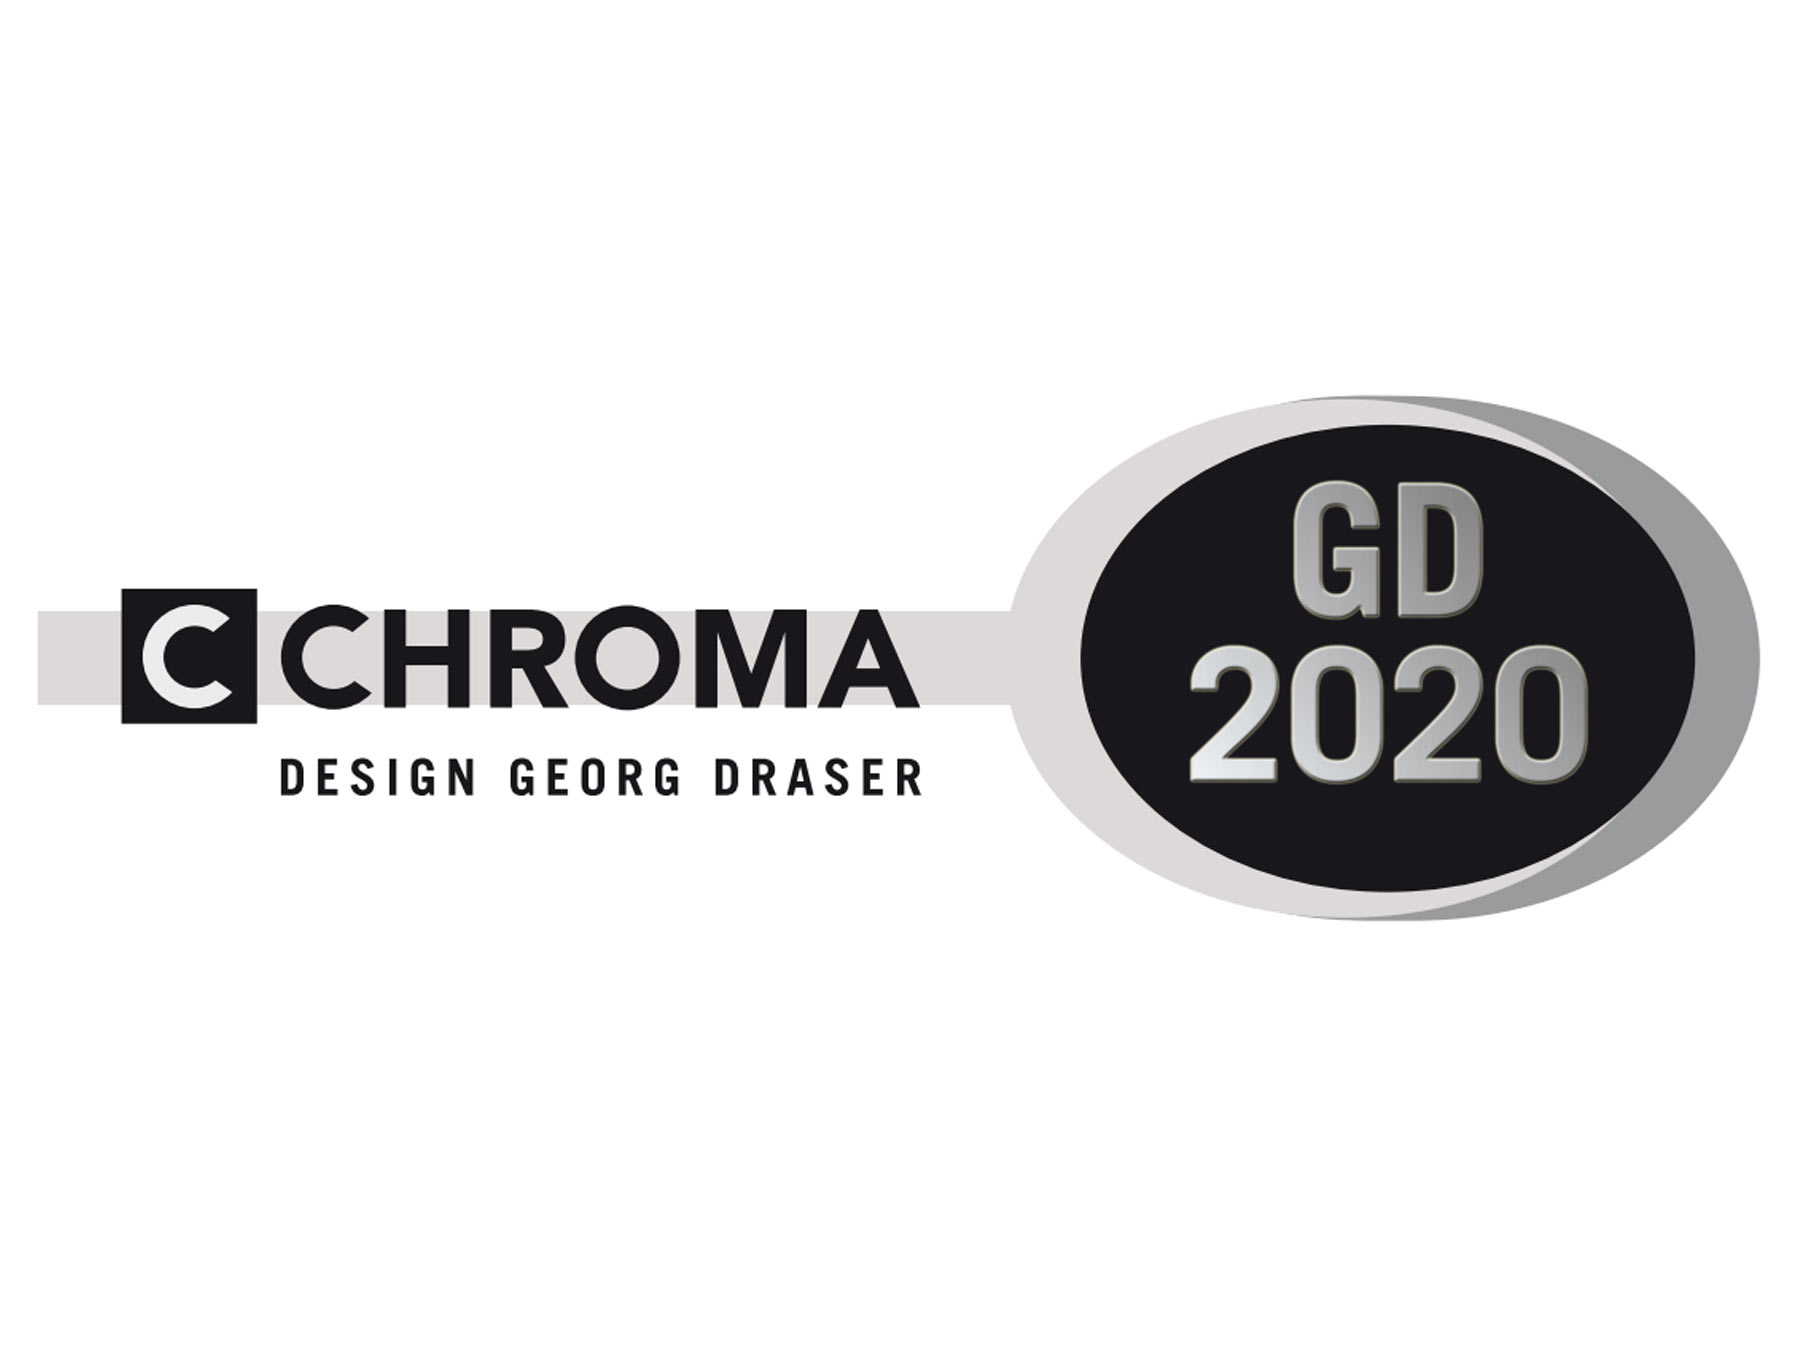 Chroma Buttermesser GD-2020-04 Design by Georg Draser 2 Stück